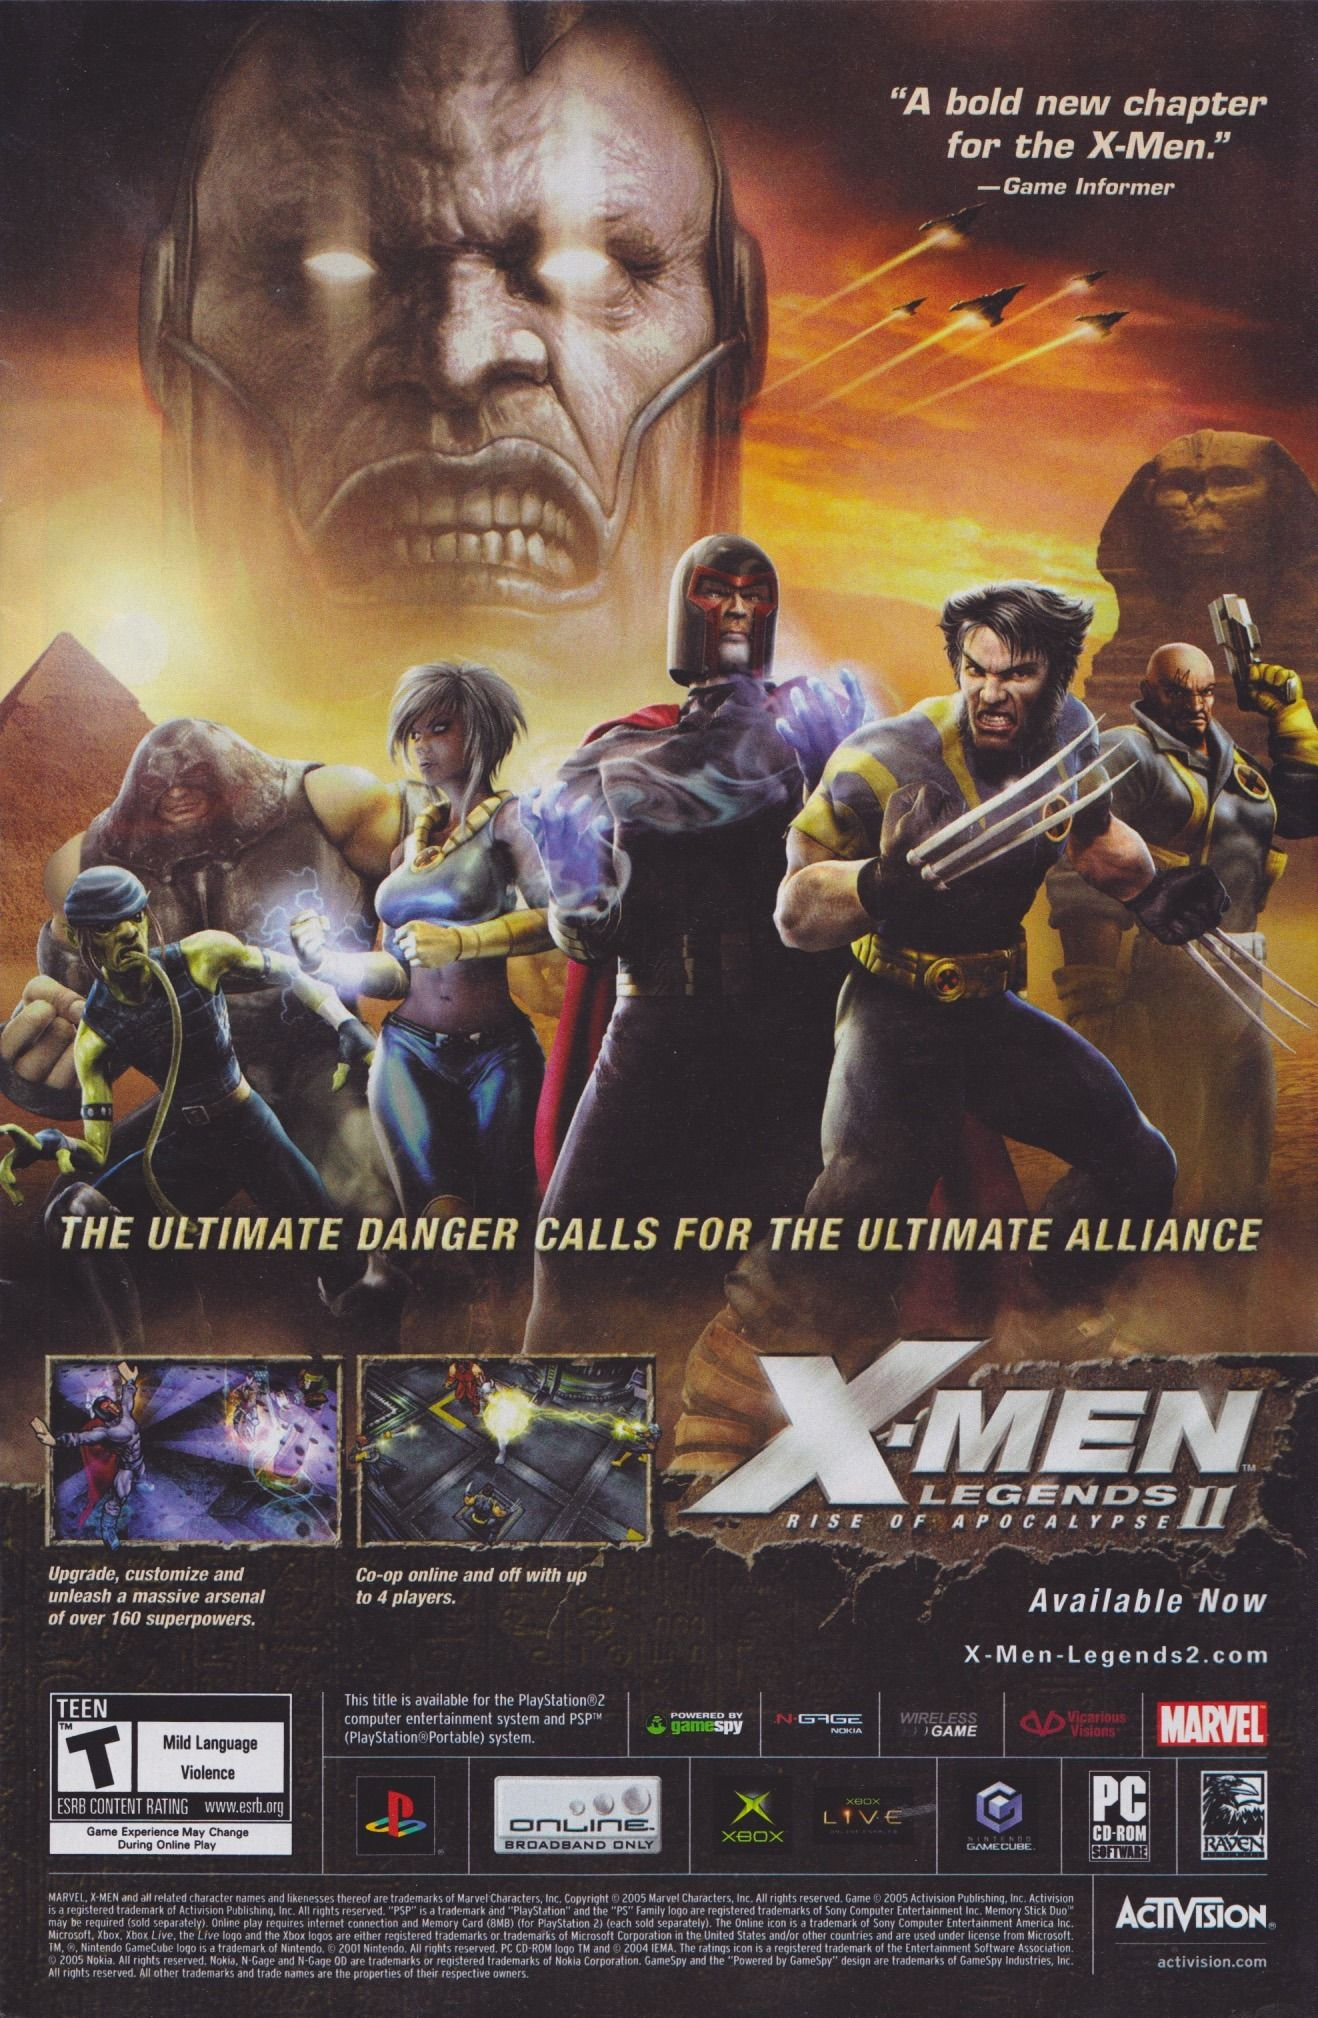 You Better Have Broadband Internet If You Re Gonna Join This Epic Fight 2005 Ps4 Xbox Gc Bitstory Retro Video Games Marvel Activision